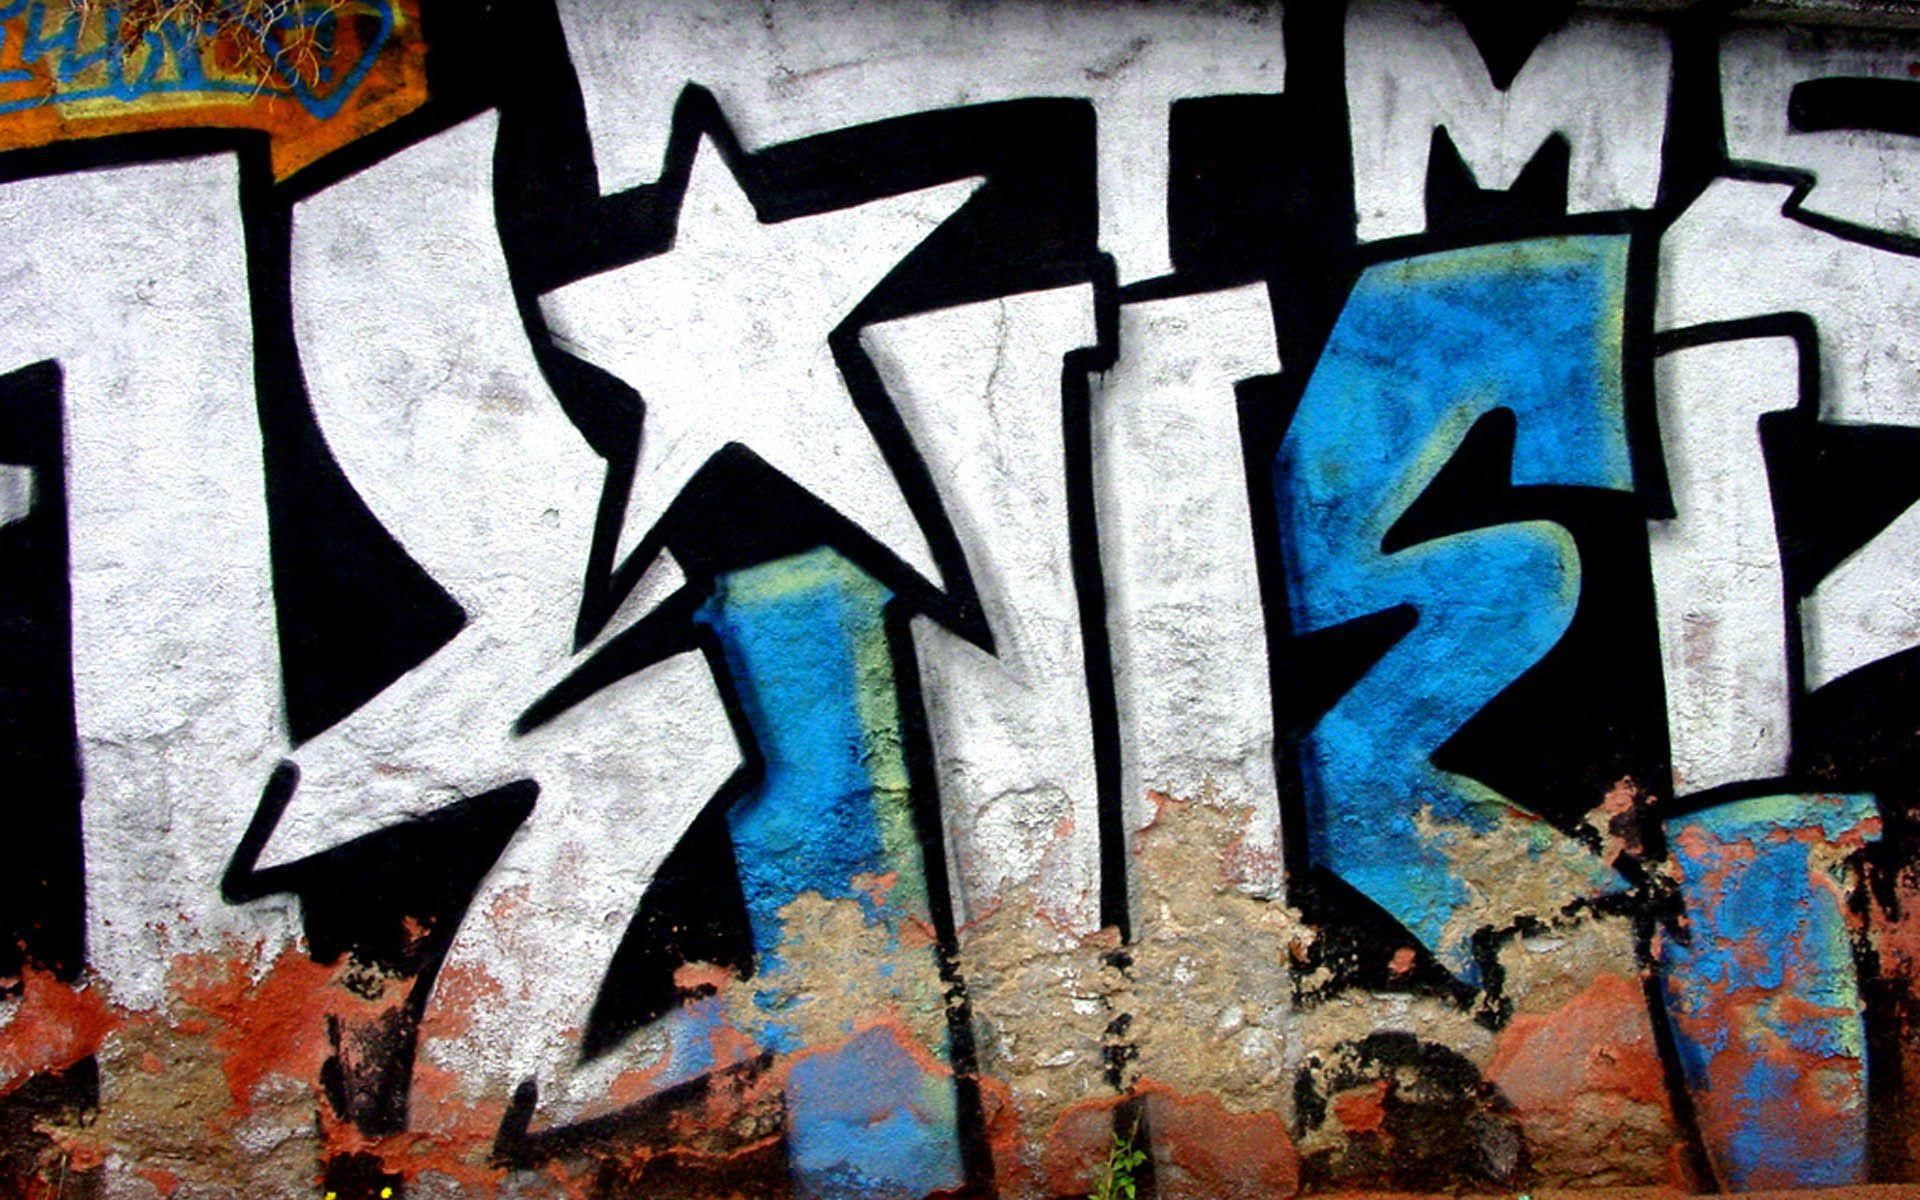 Hd graffiti wallpapers wallpaper cave for Graffiti wallpaper